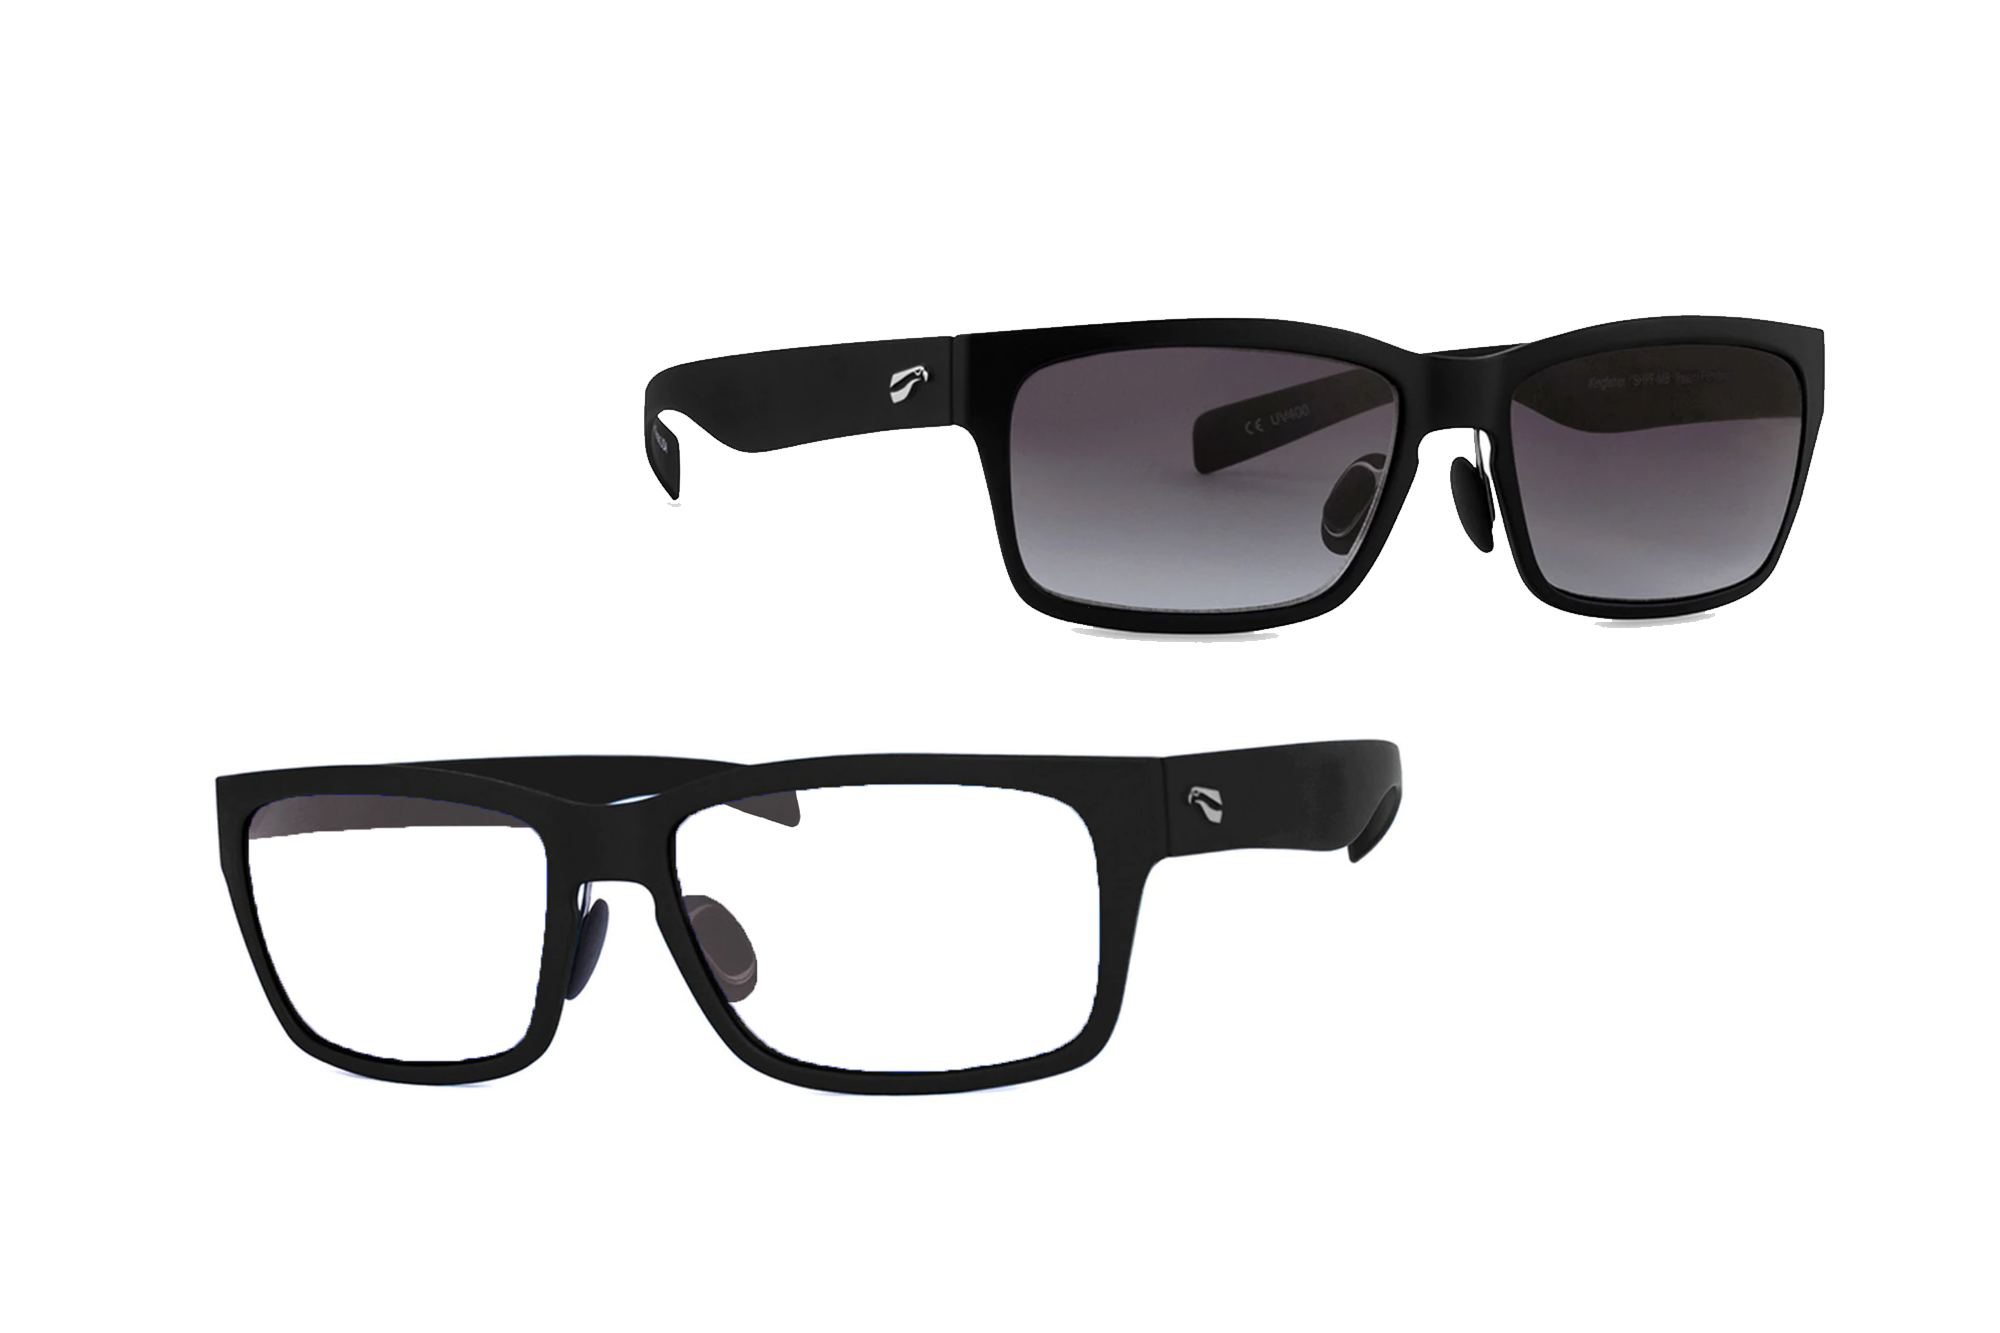 Kingfisher Non-Rx Bifocal - Matte Black Frames with Gradient Gray and Clear Lenses